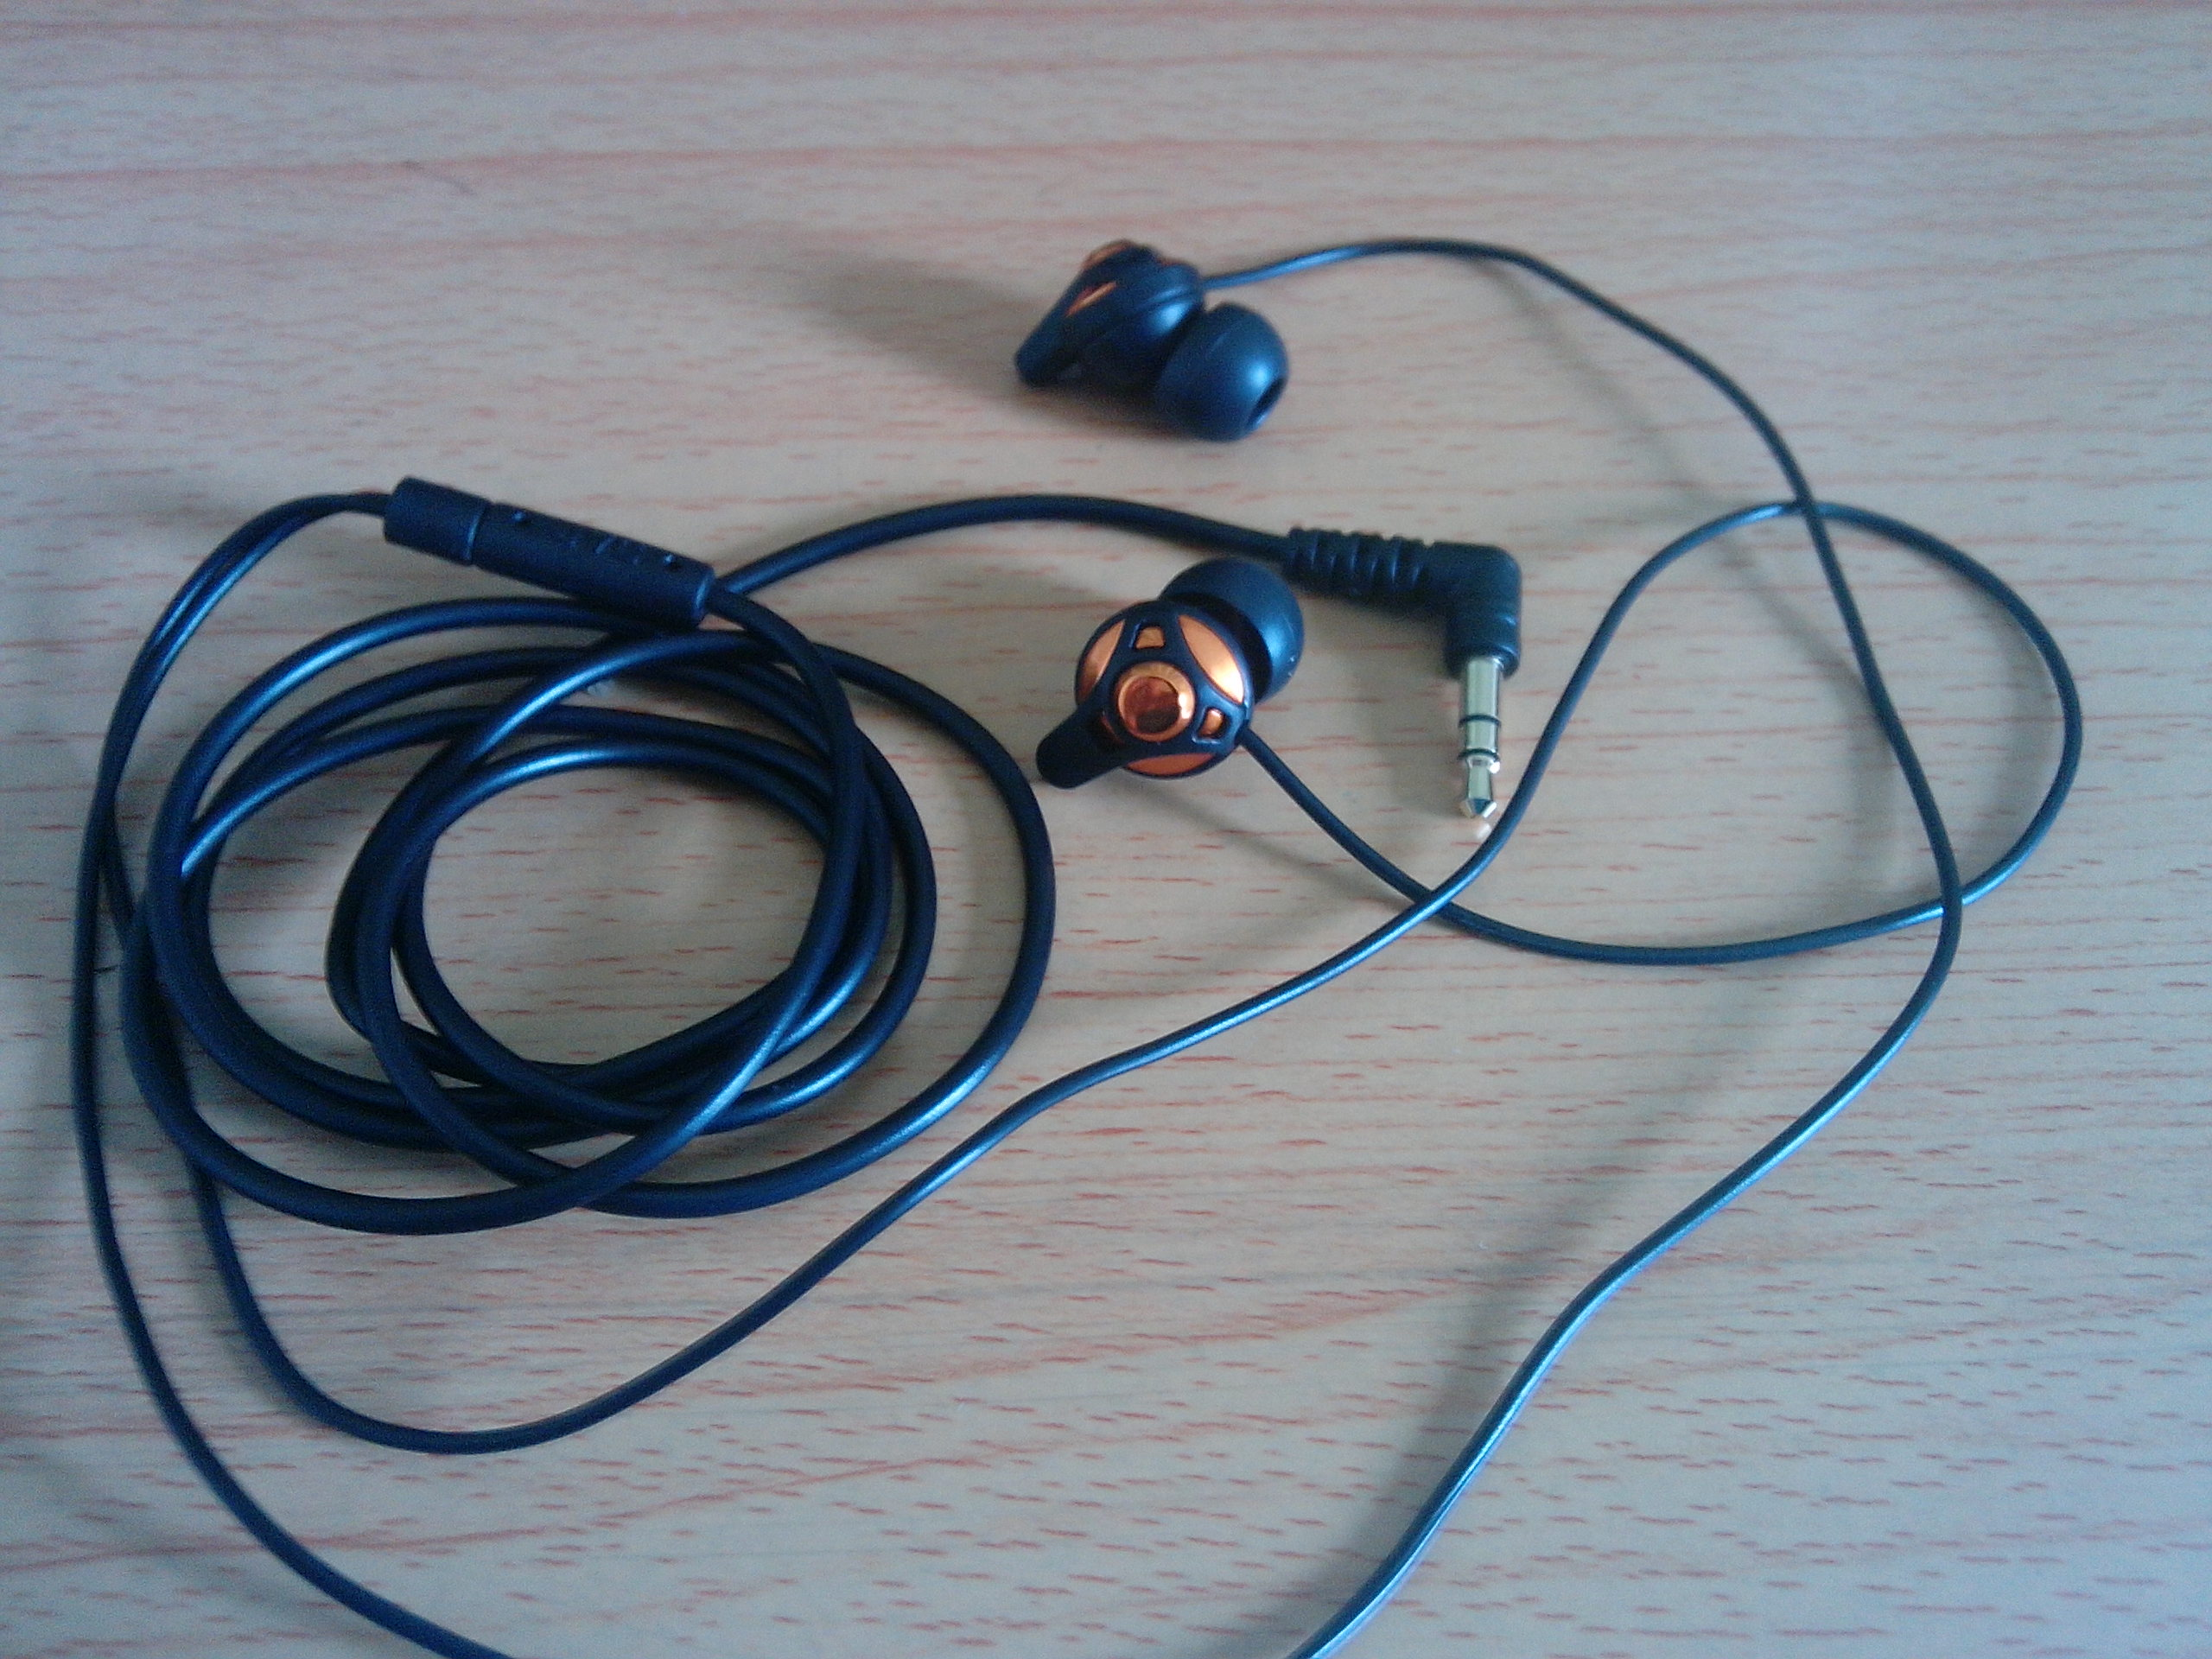 JVC HA-FX40 | Believe the hype! | Page 6 | Headphone Reviews and